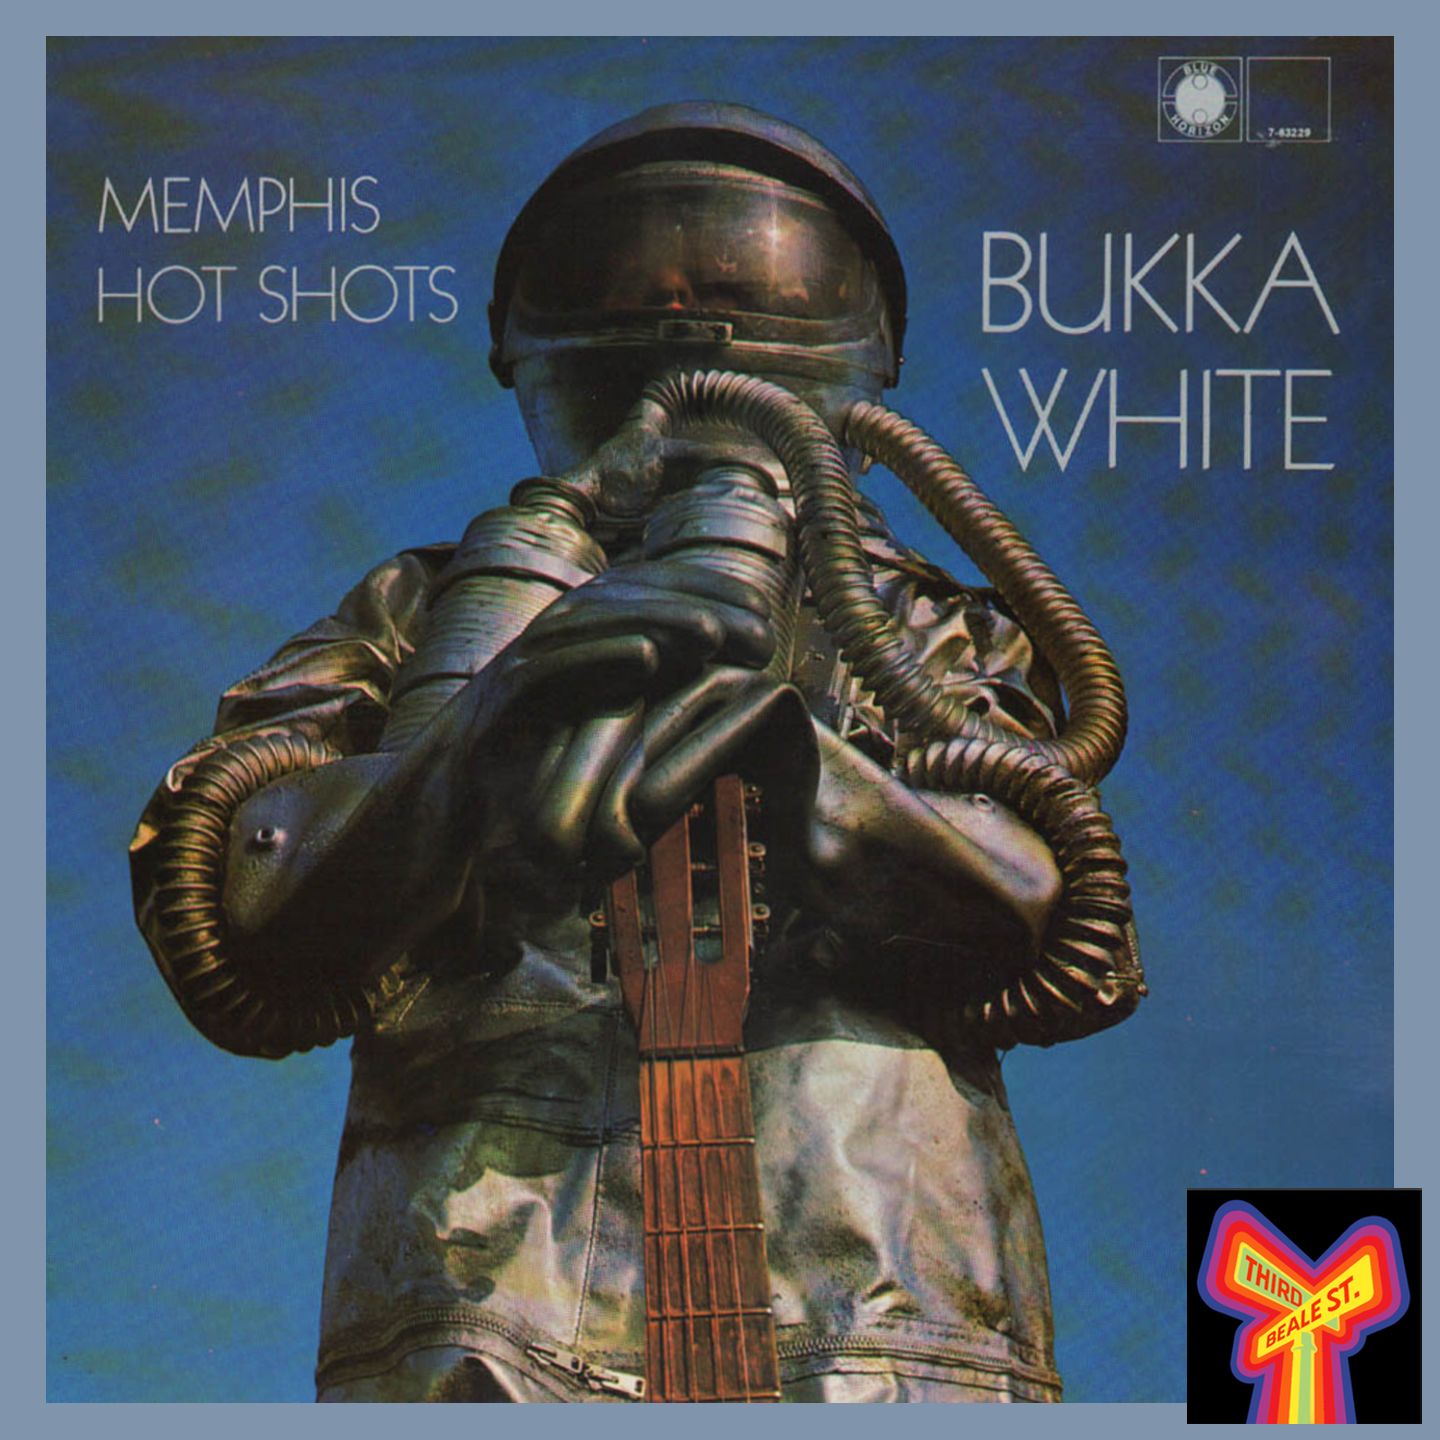 "Caption: Blue Horizon often featured striking and distinctive album covers, such as this one for Bukka White's ""Memphis Hot Shots"" LP."